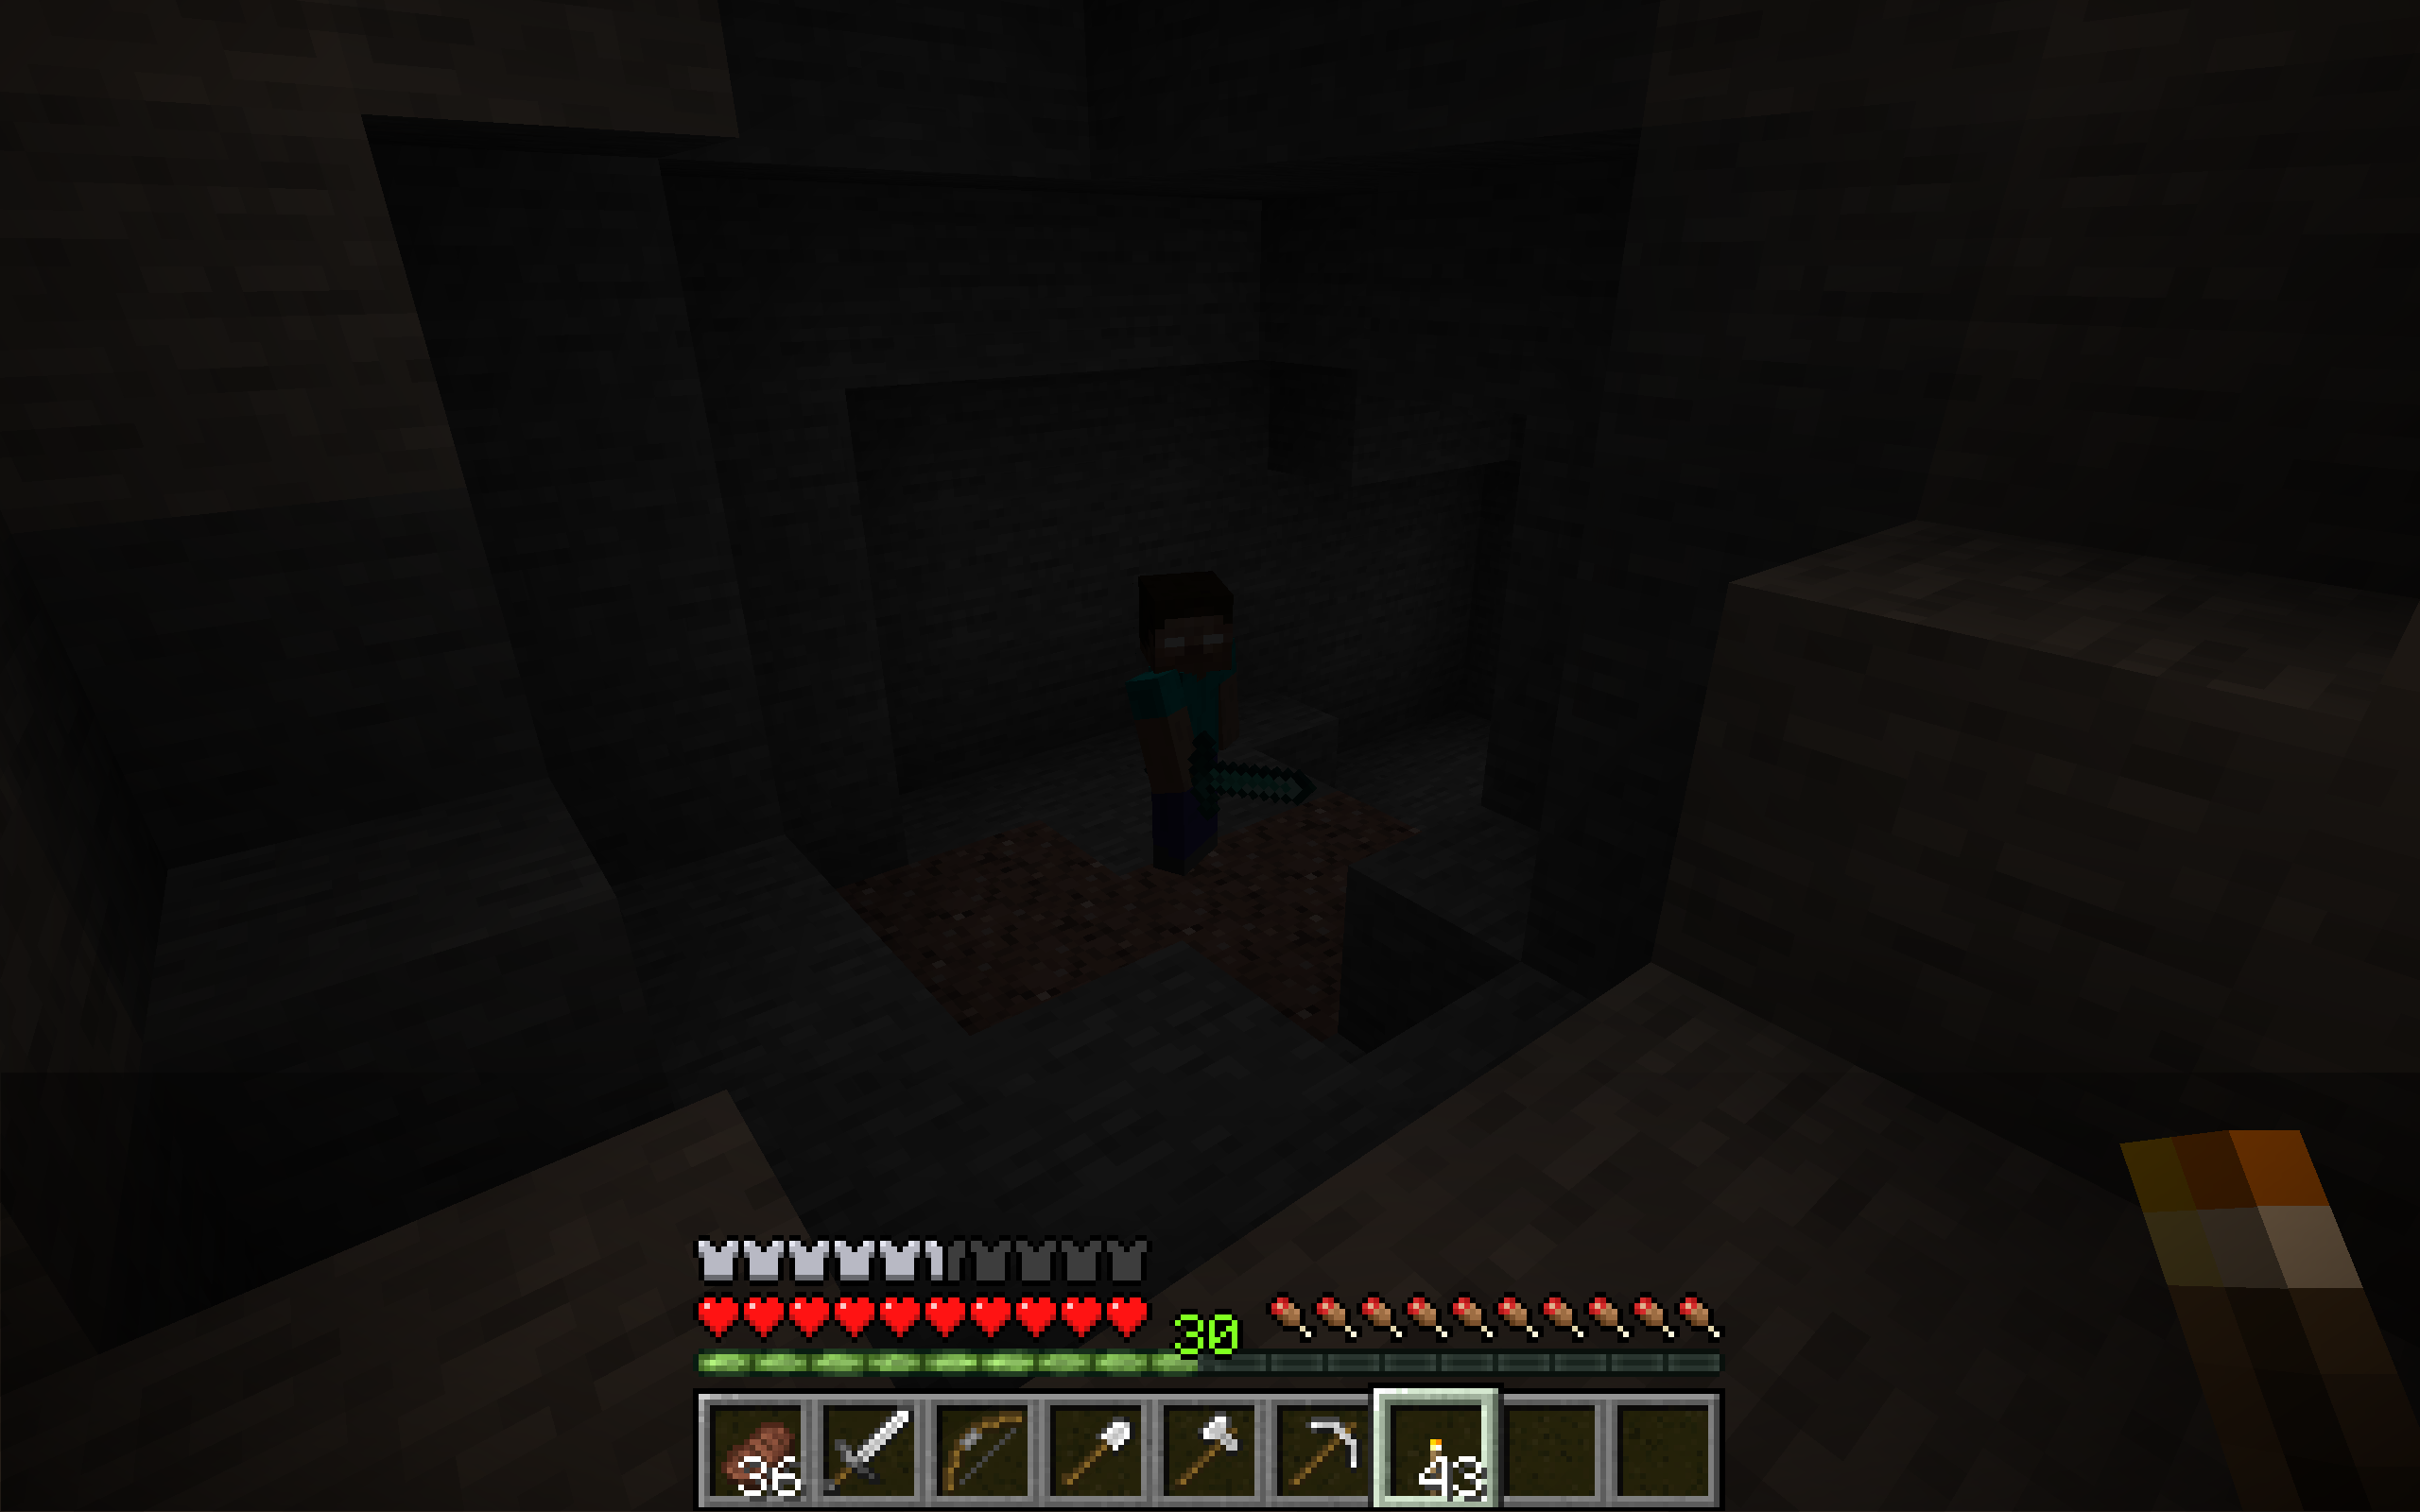 Herobrine cave sighting